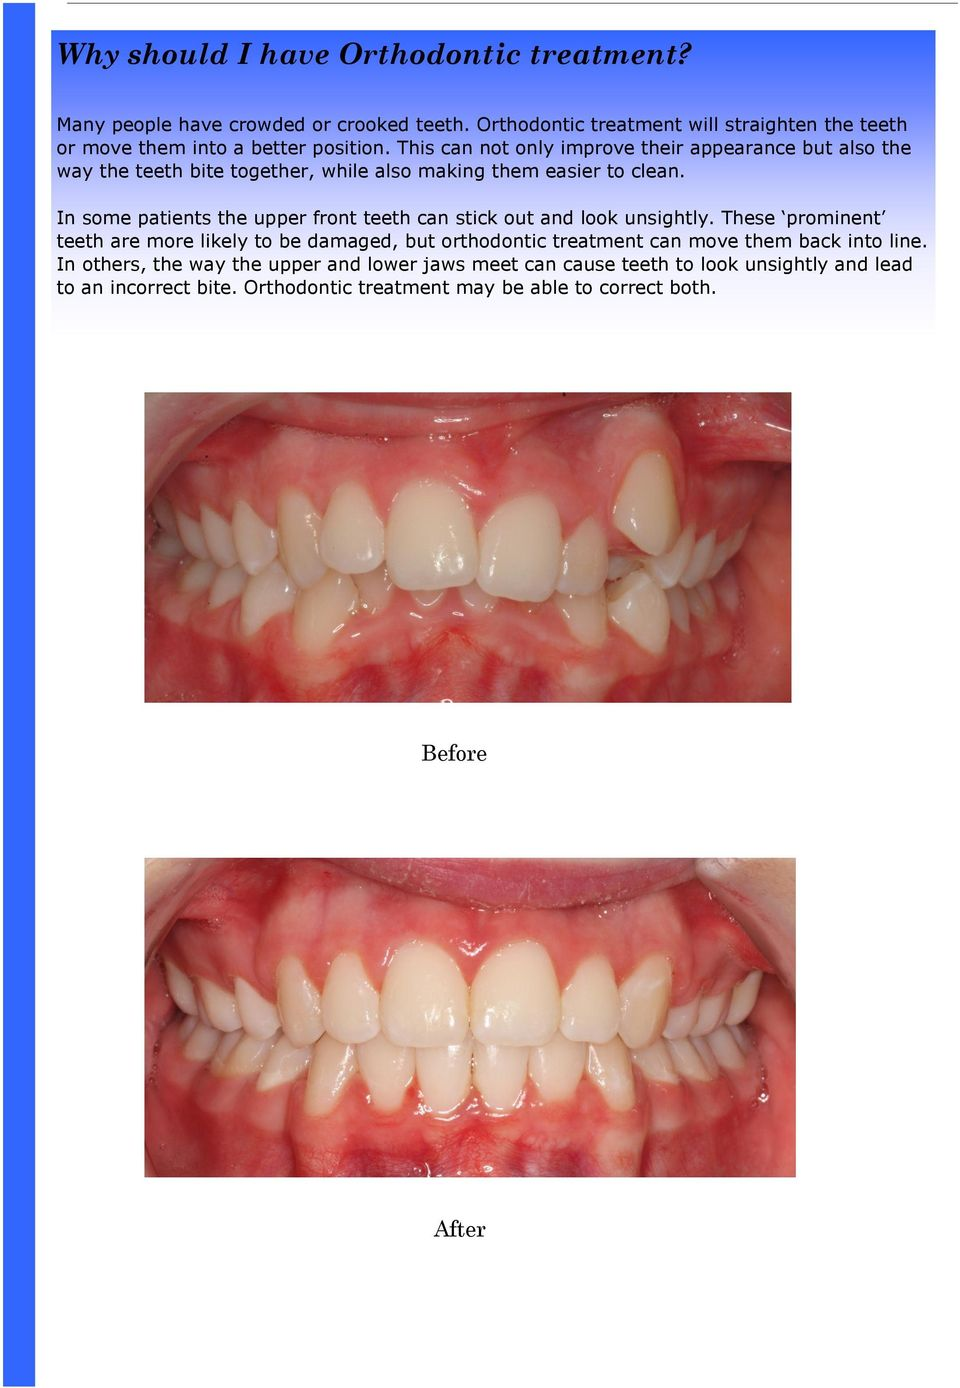 This can not only improve their appearance but also the way the teeth bite together, while also making them easier to clean.